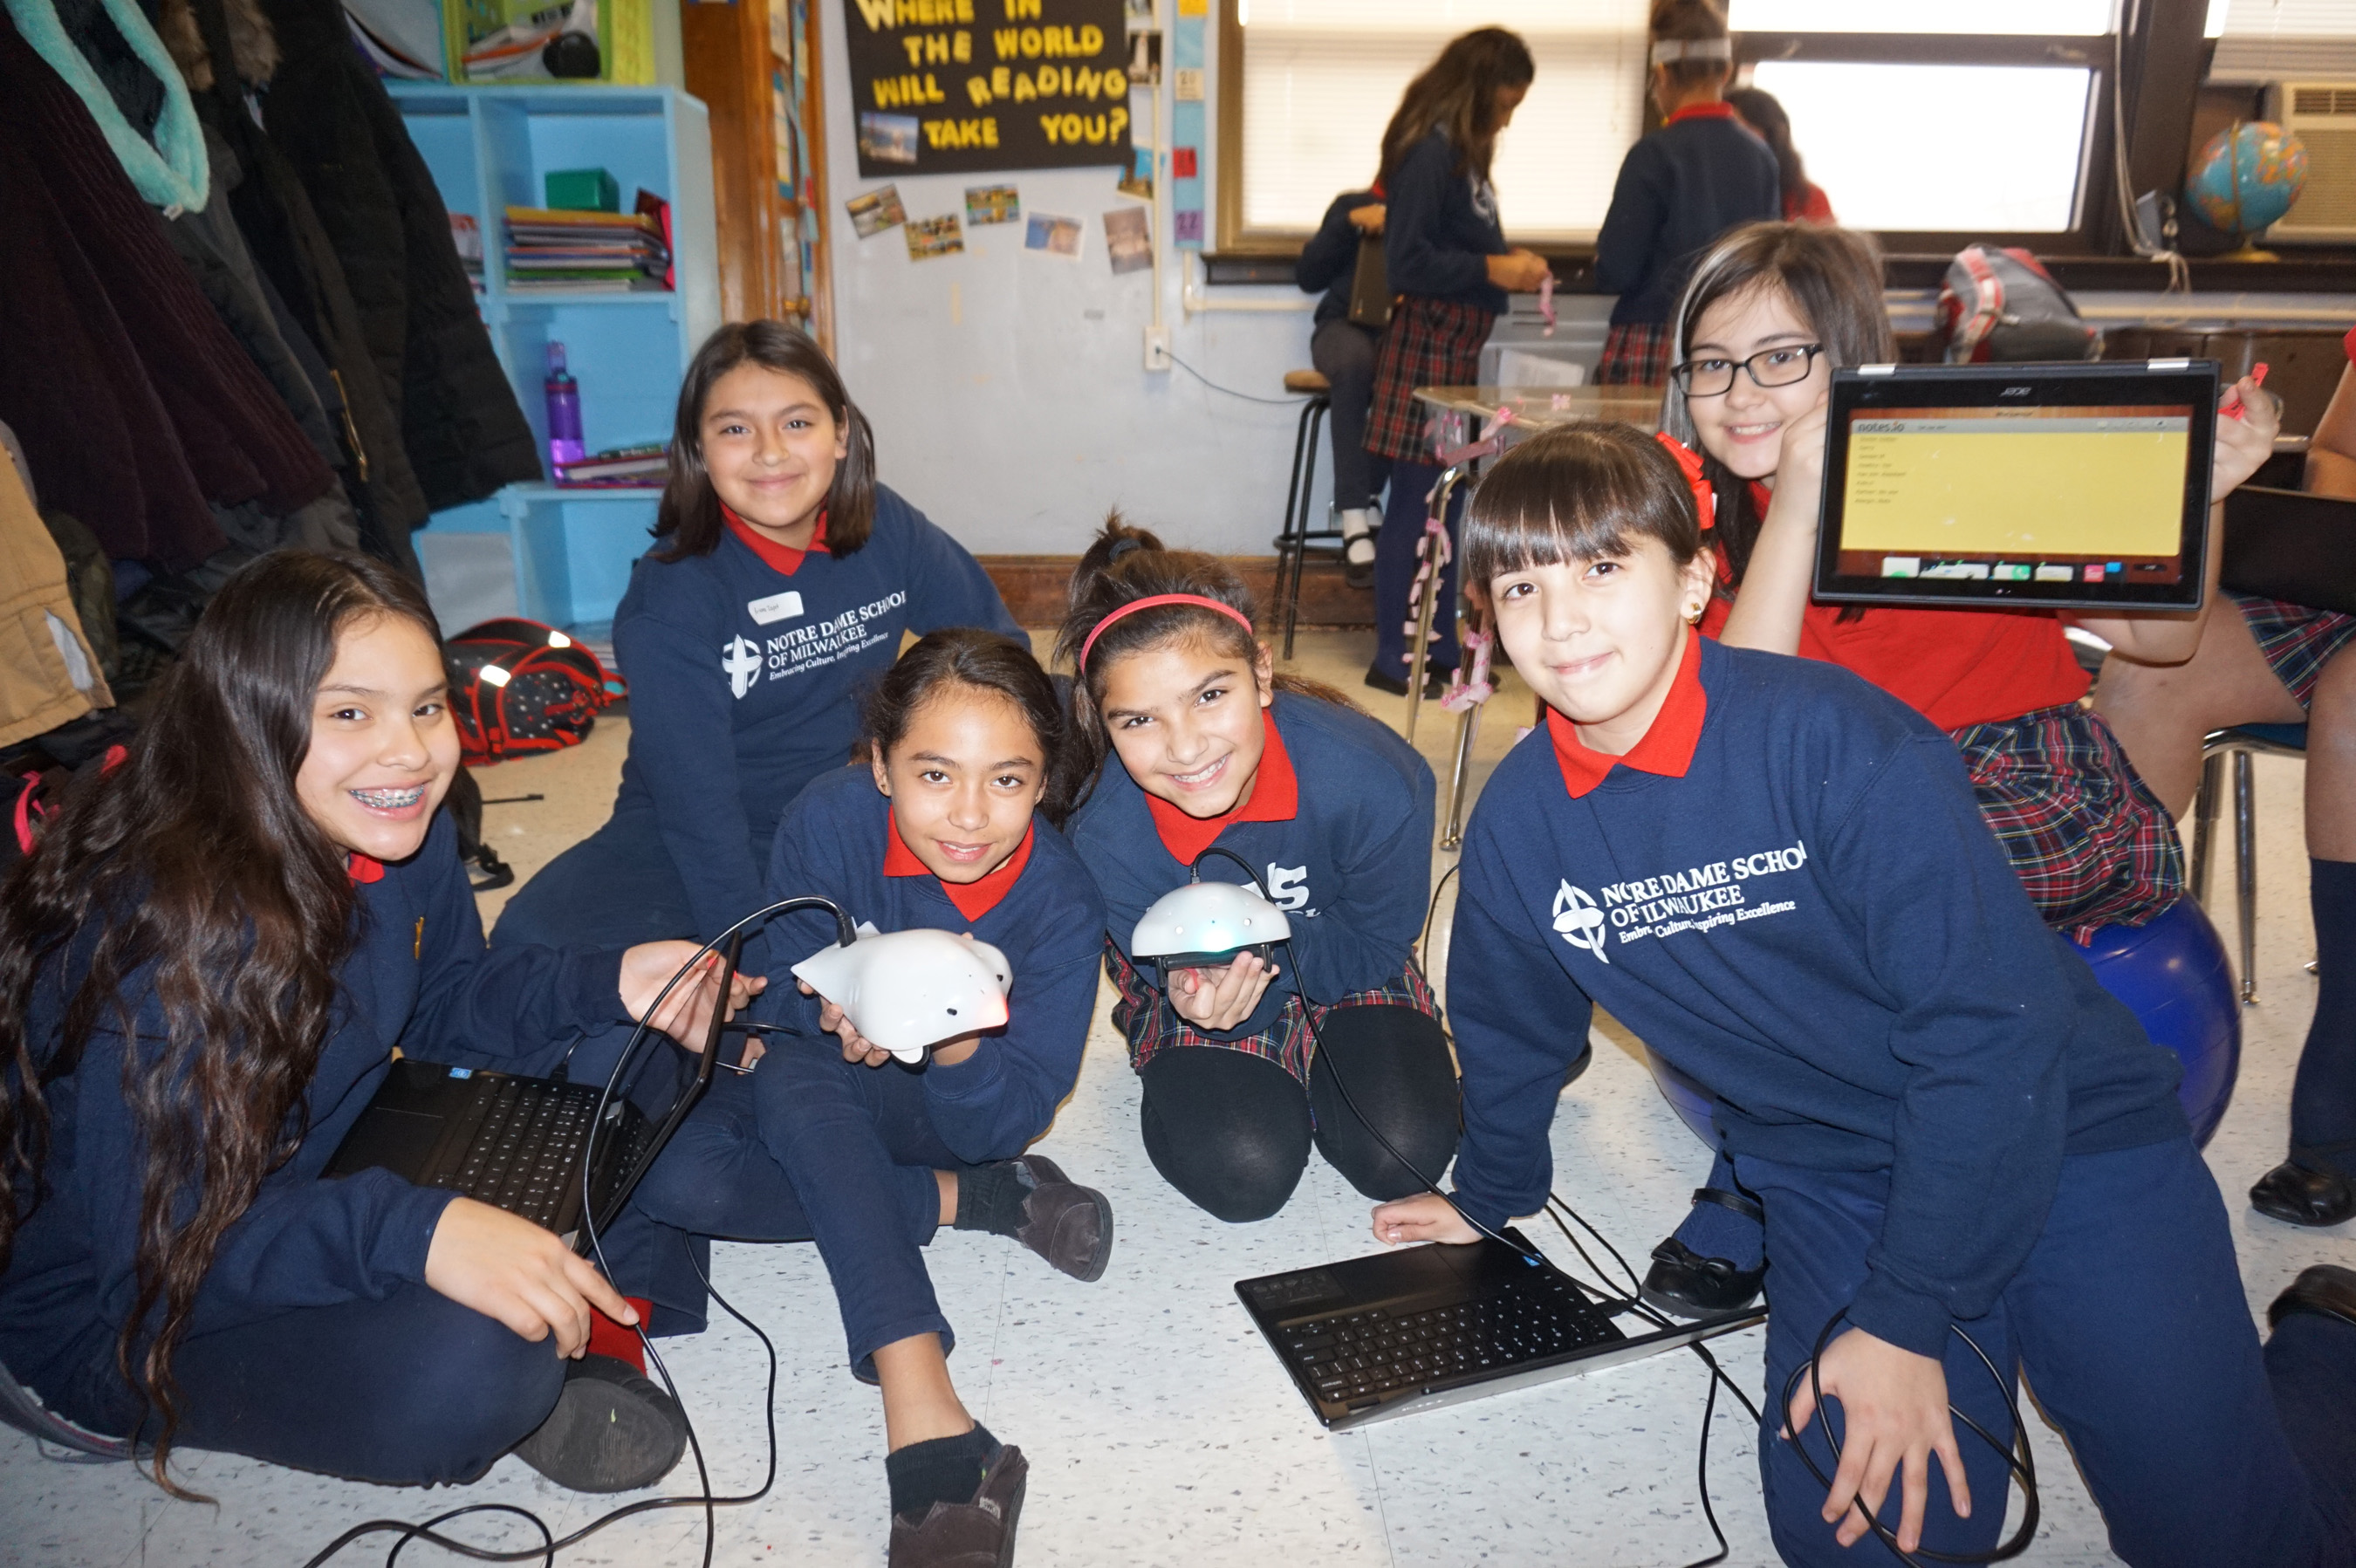 Students from Notre Dame School of Milwaukee worked in teams to code and program Finch Robots to go through self-created mazes.